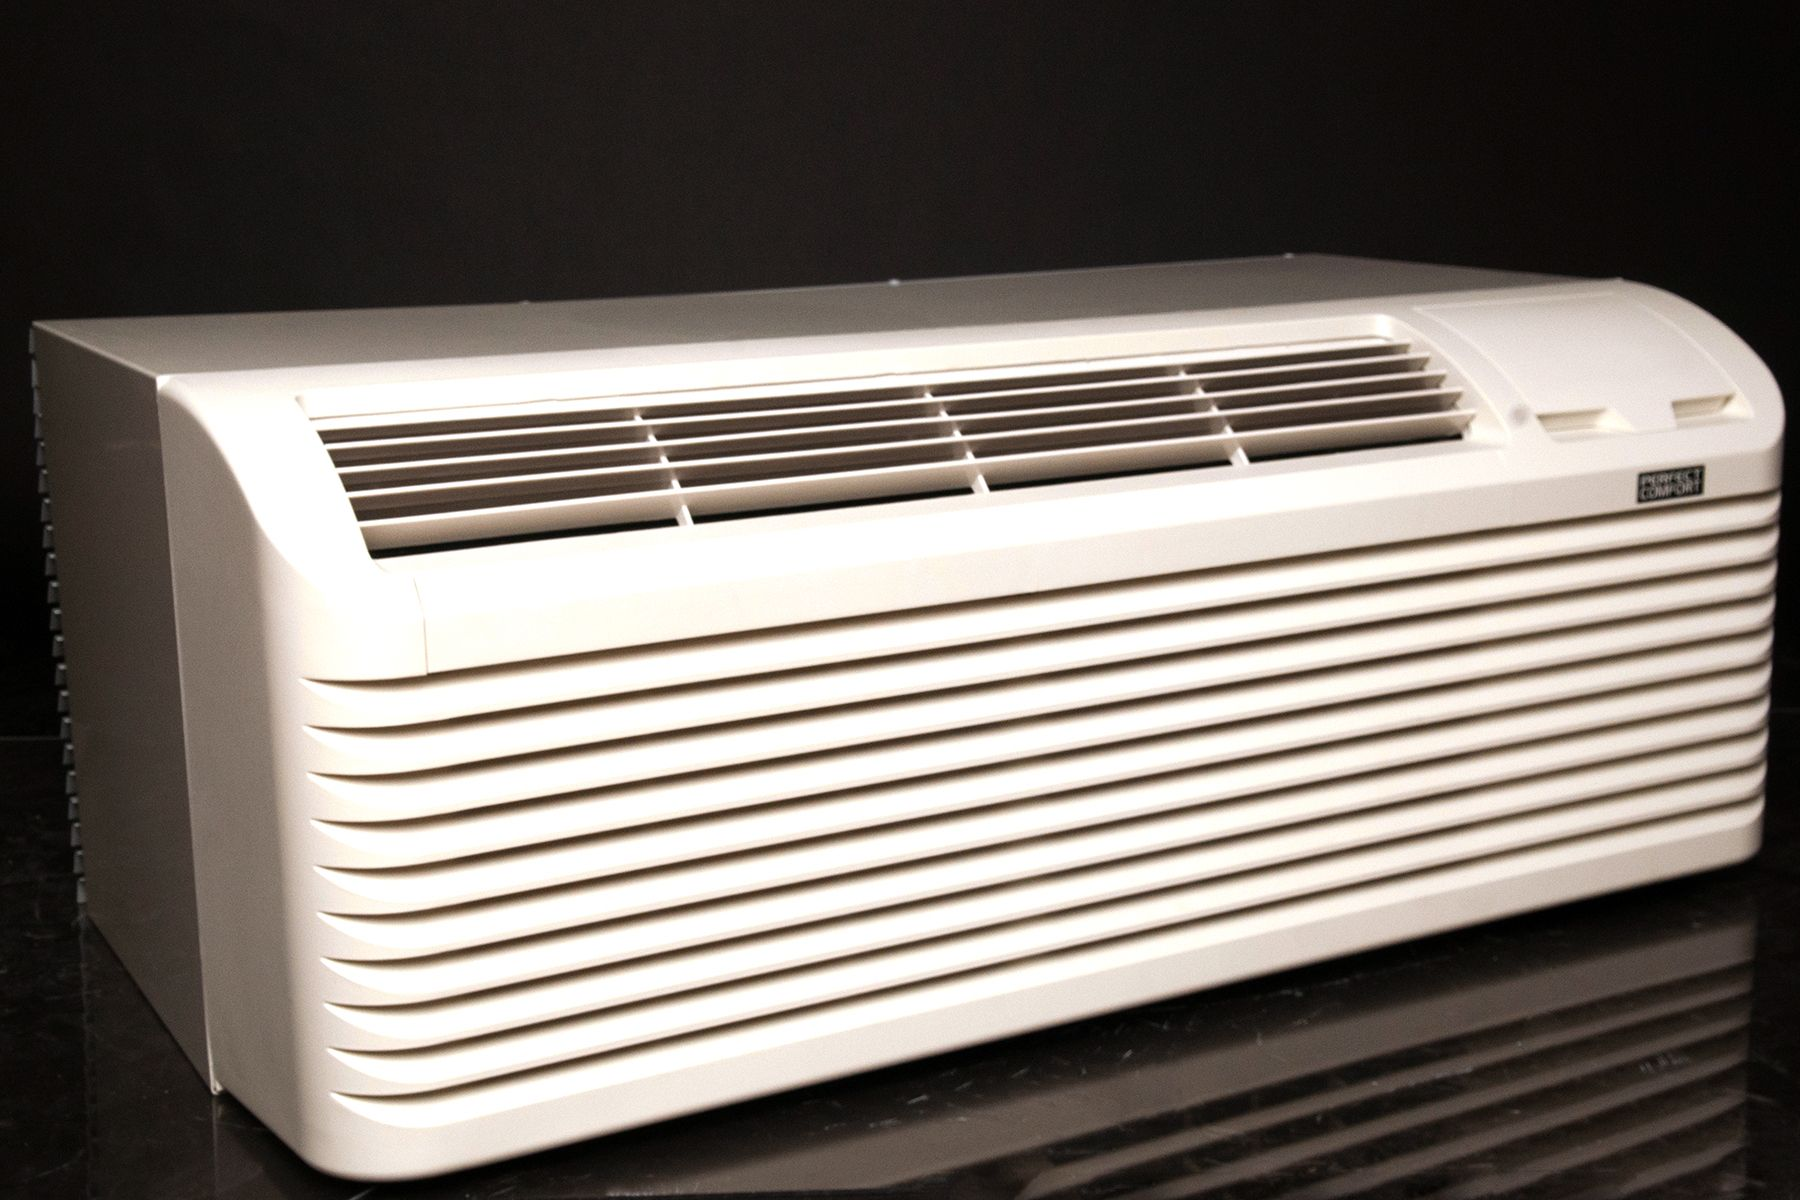 •Two fans one indoor fan and outdoor. This allows the